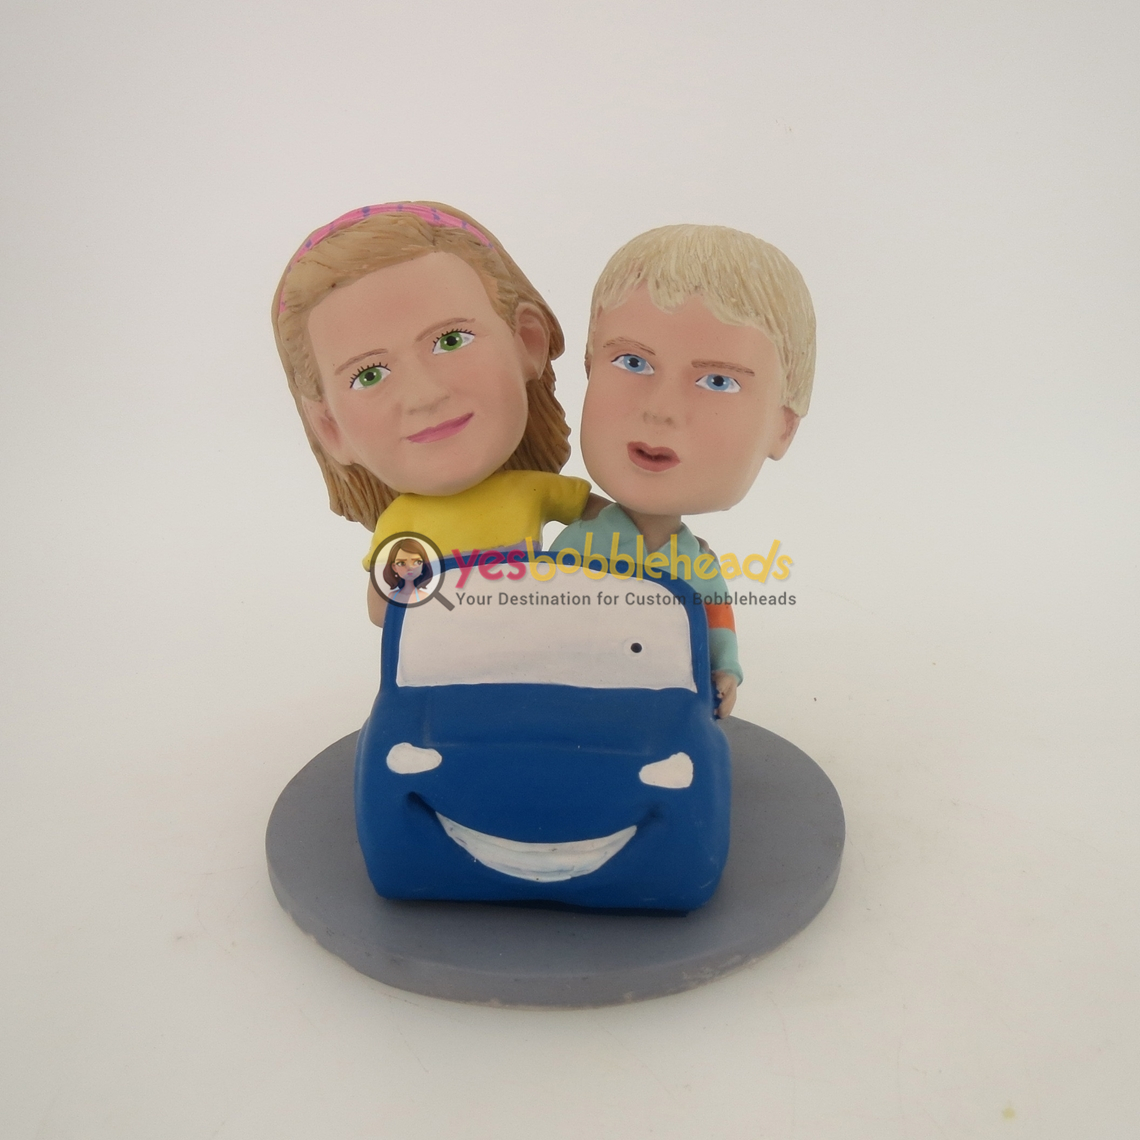 Picture of Custom Bobblehead Doll: Driving Couple